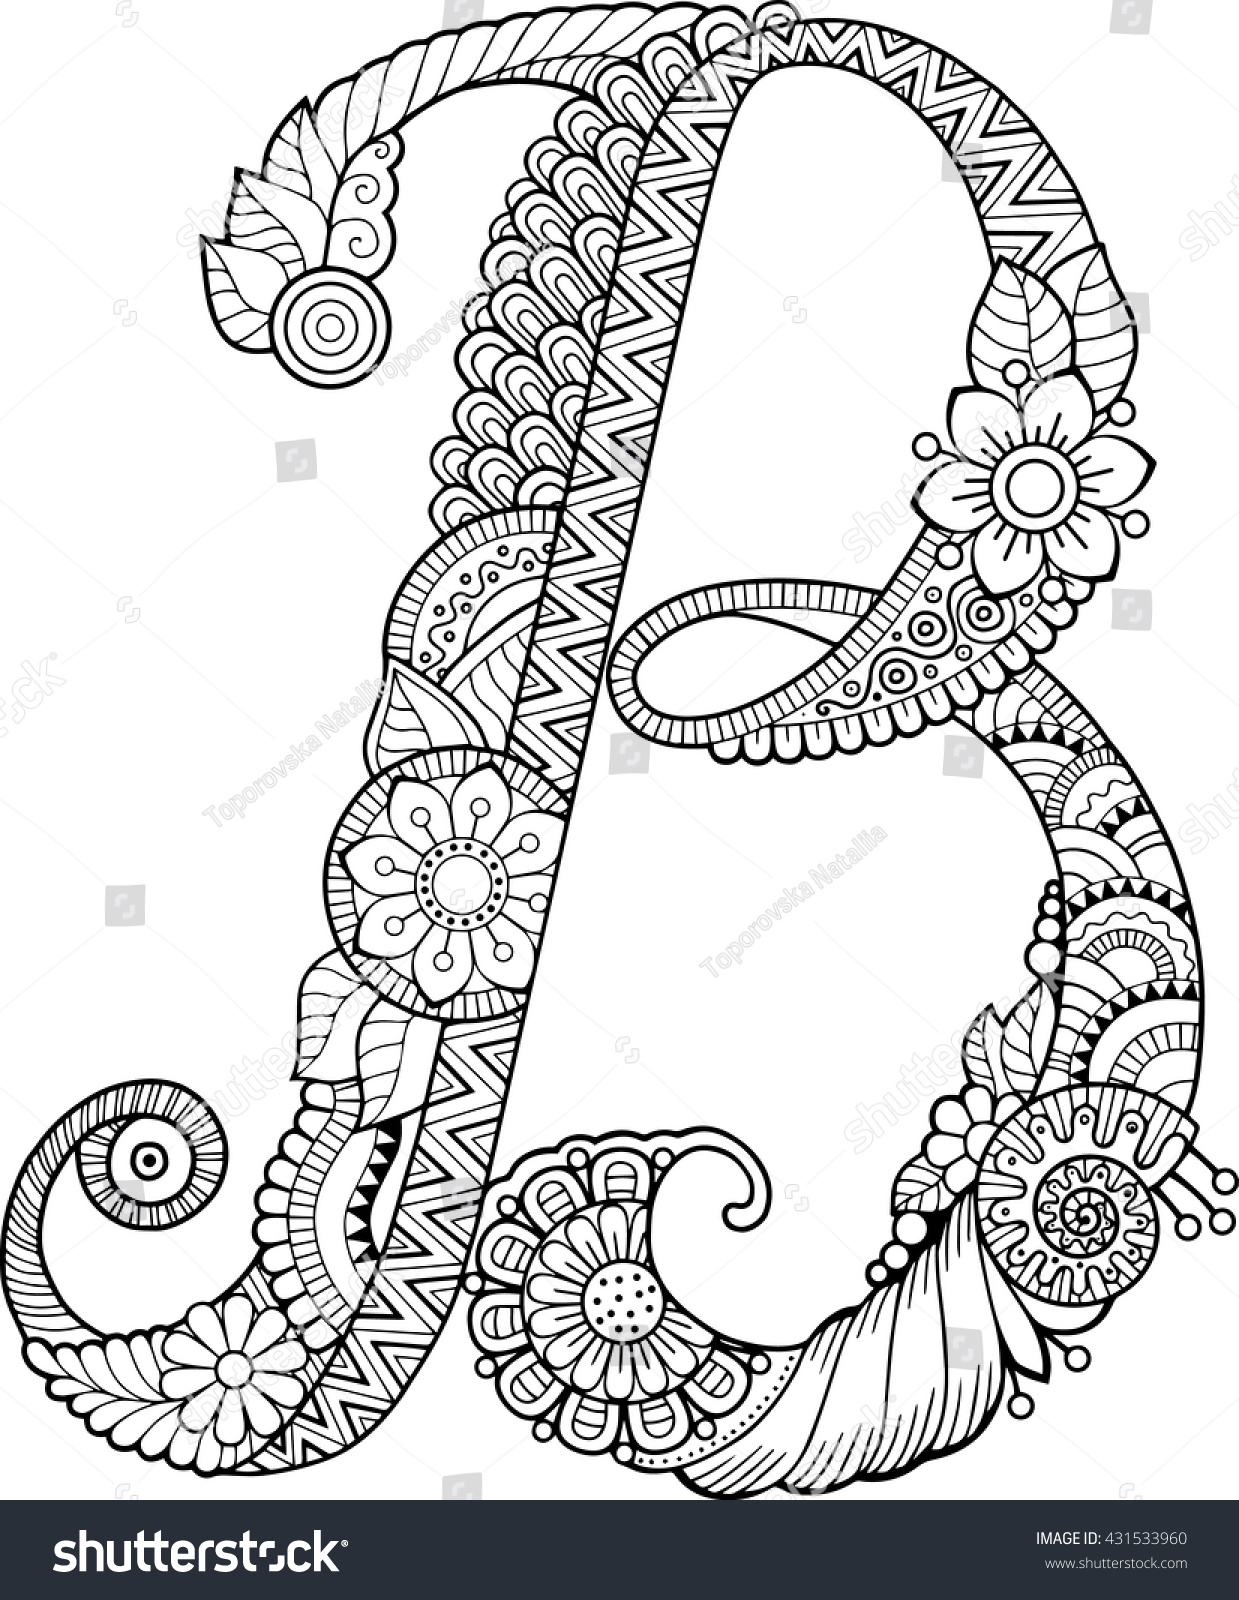 Coloring Book For Adults Floral Doodle Letter B Hand Drawn Flowers Alphabet